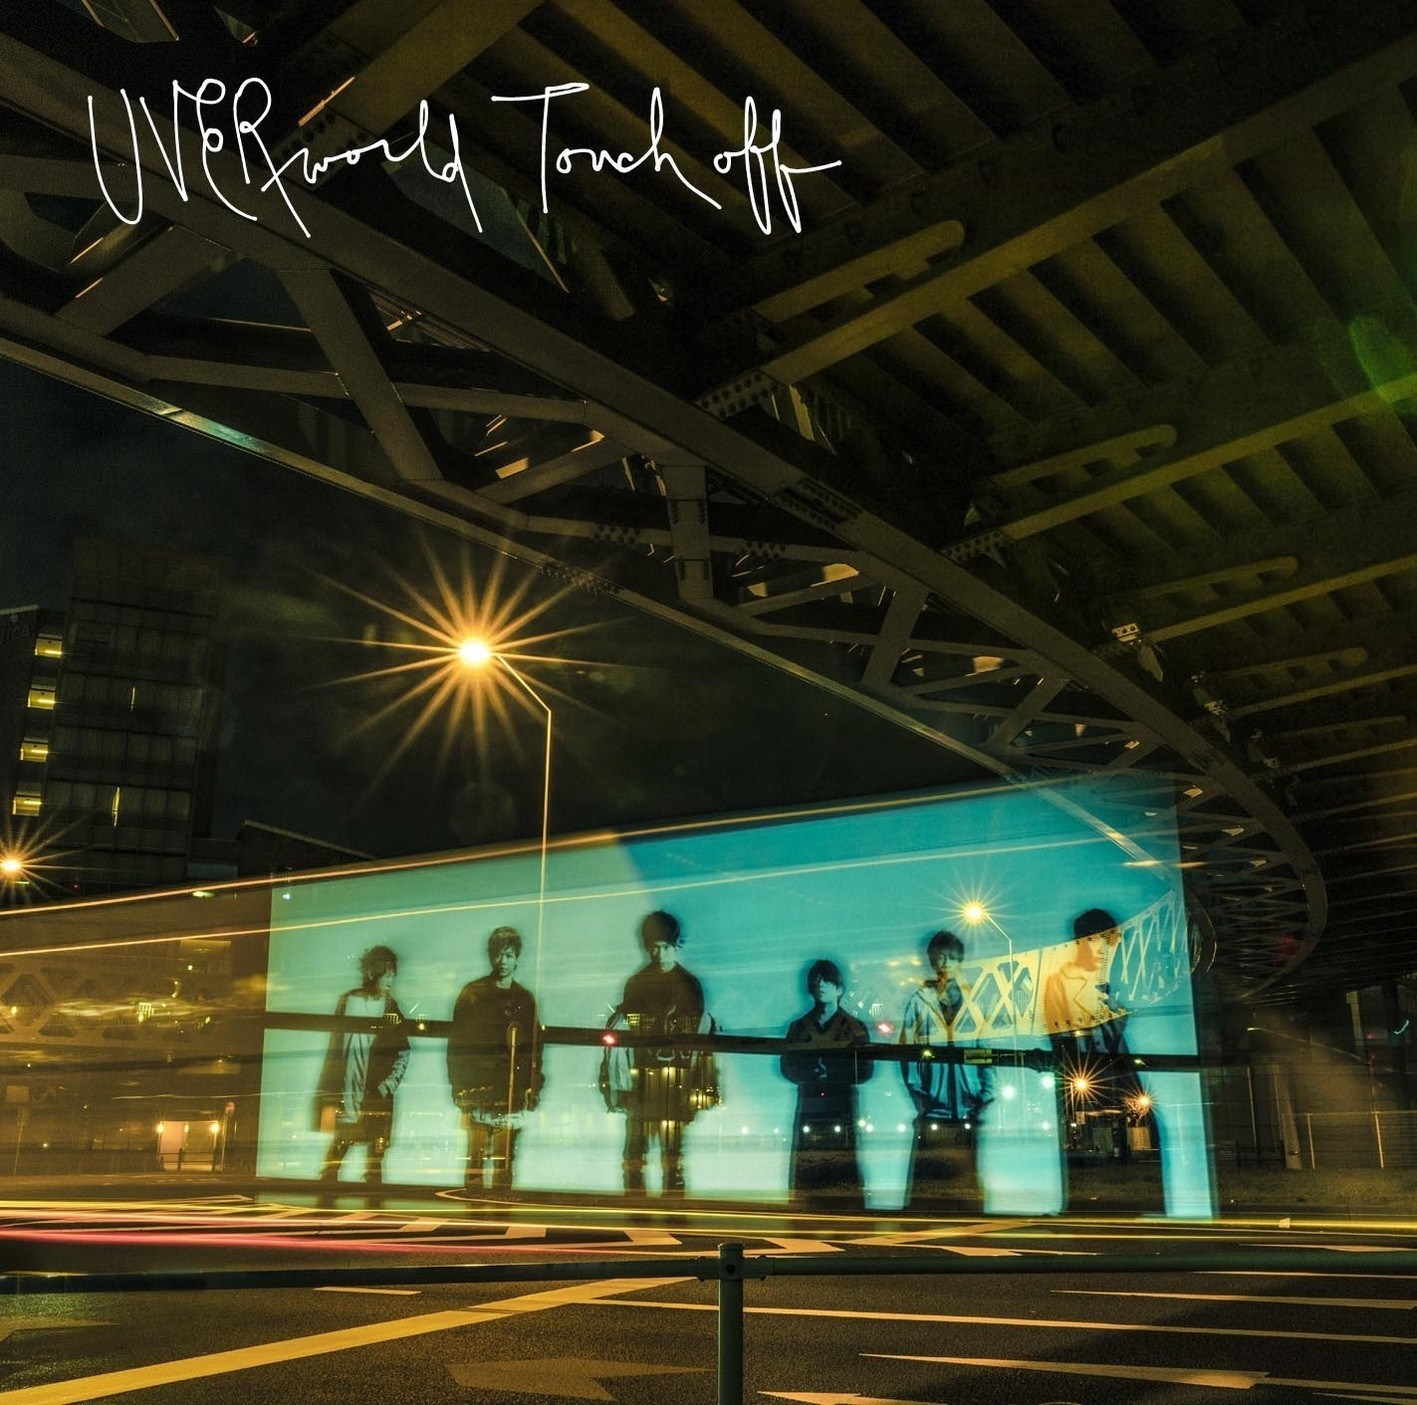 Single] UVERworld - Touch off [2019 02 27] FLAC / Lossless / WEB